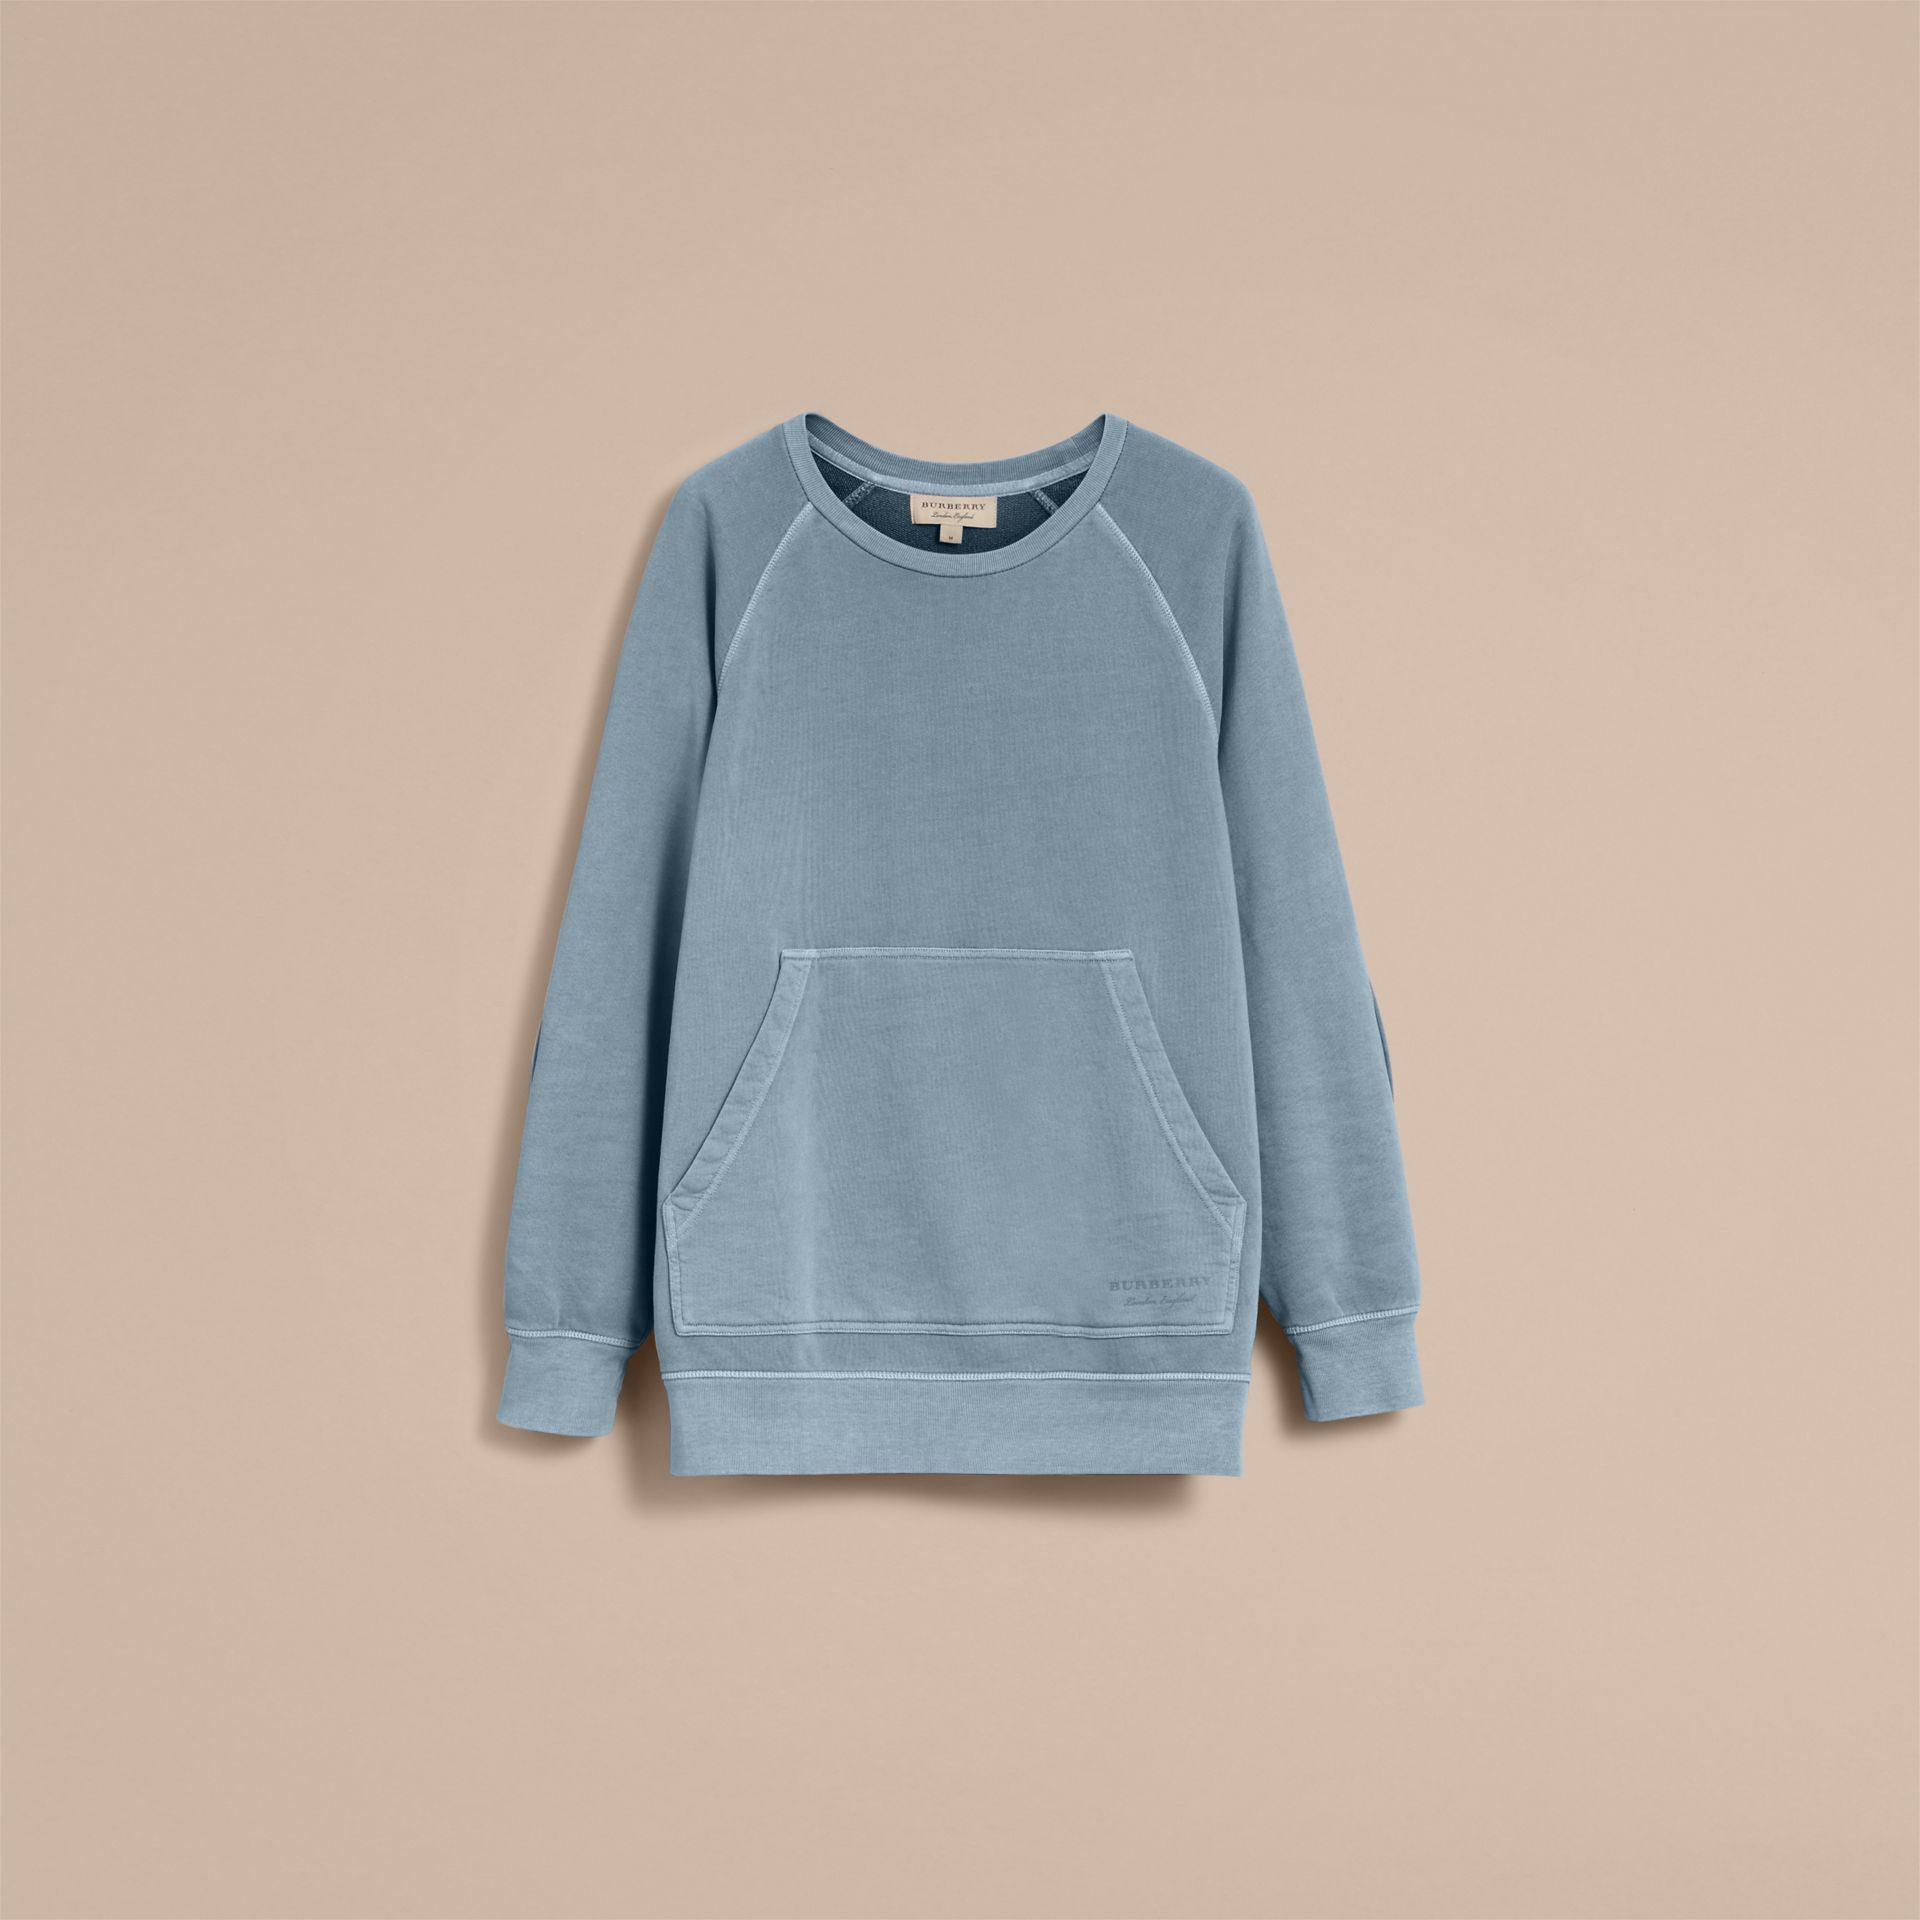 Unisex Pigment-dyed Cotton Oversize Sweatshirt in Dusty Blue - gallery image 4